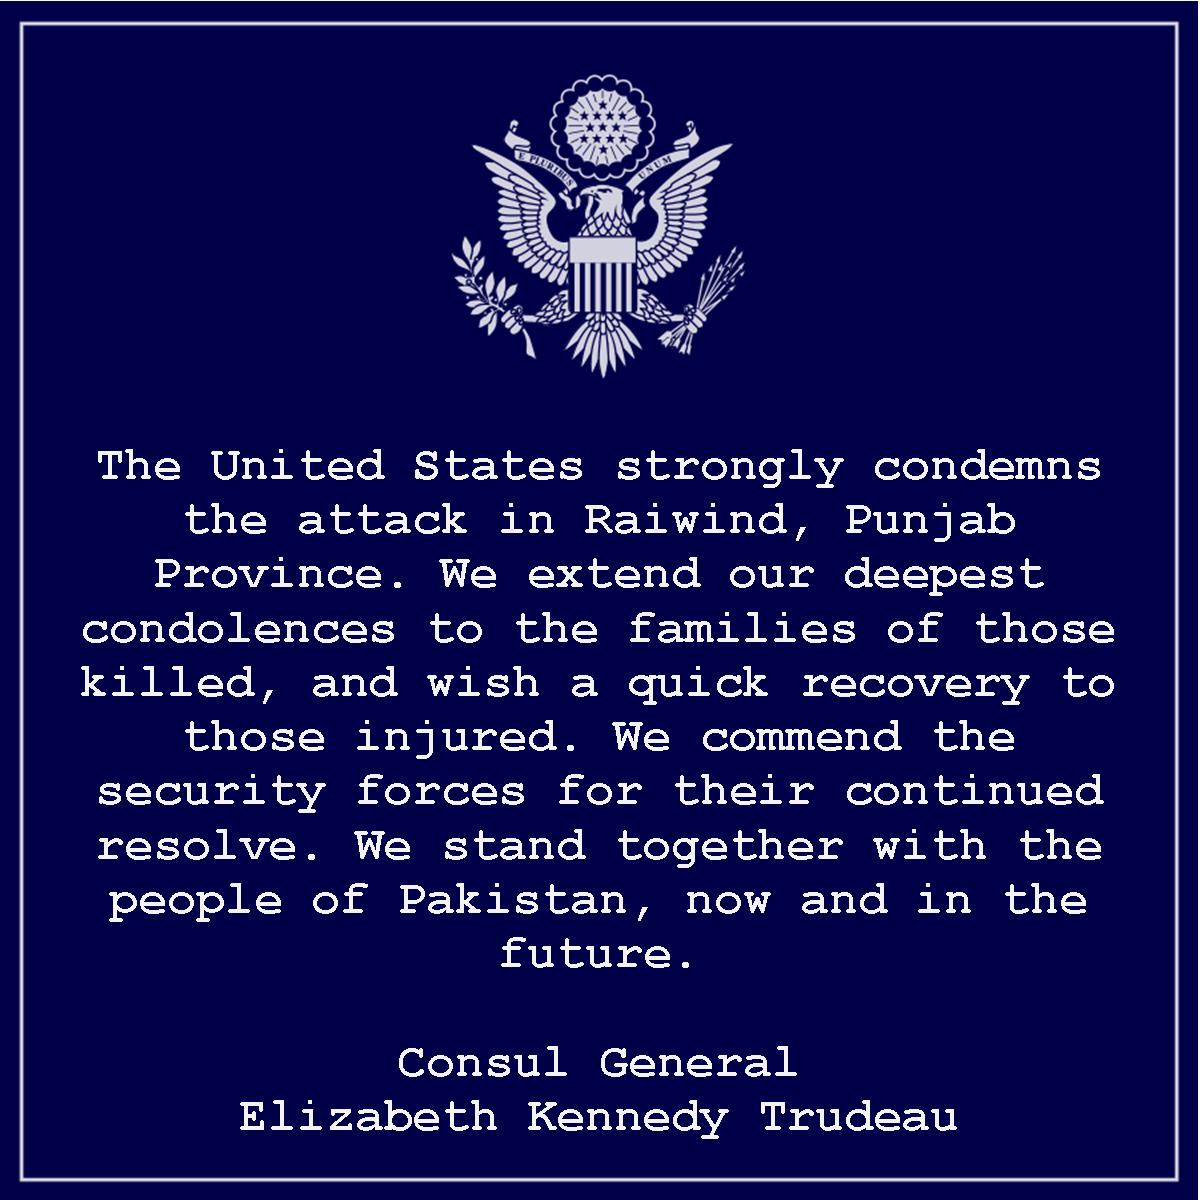 US Consulate Lahore (@USCGLahore) on Twitter photo 2018-03-15 06:24:25